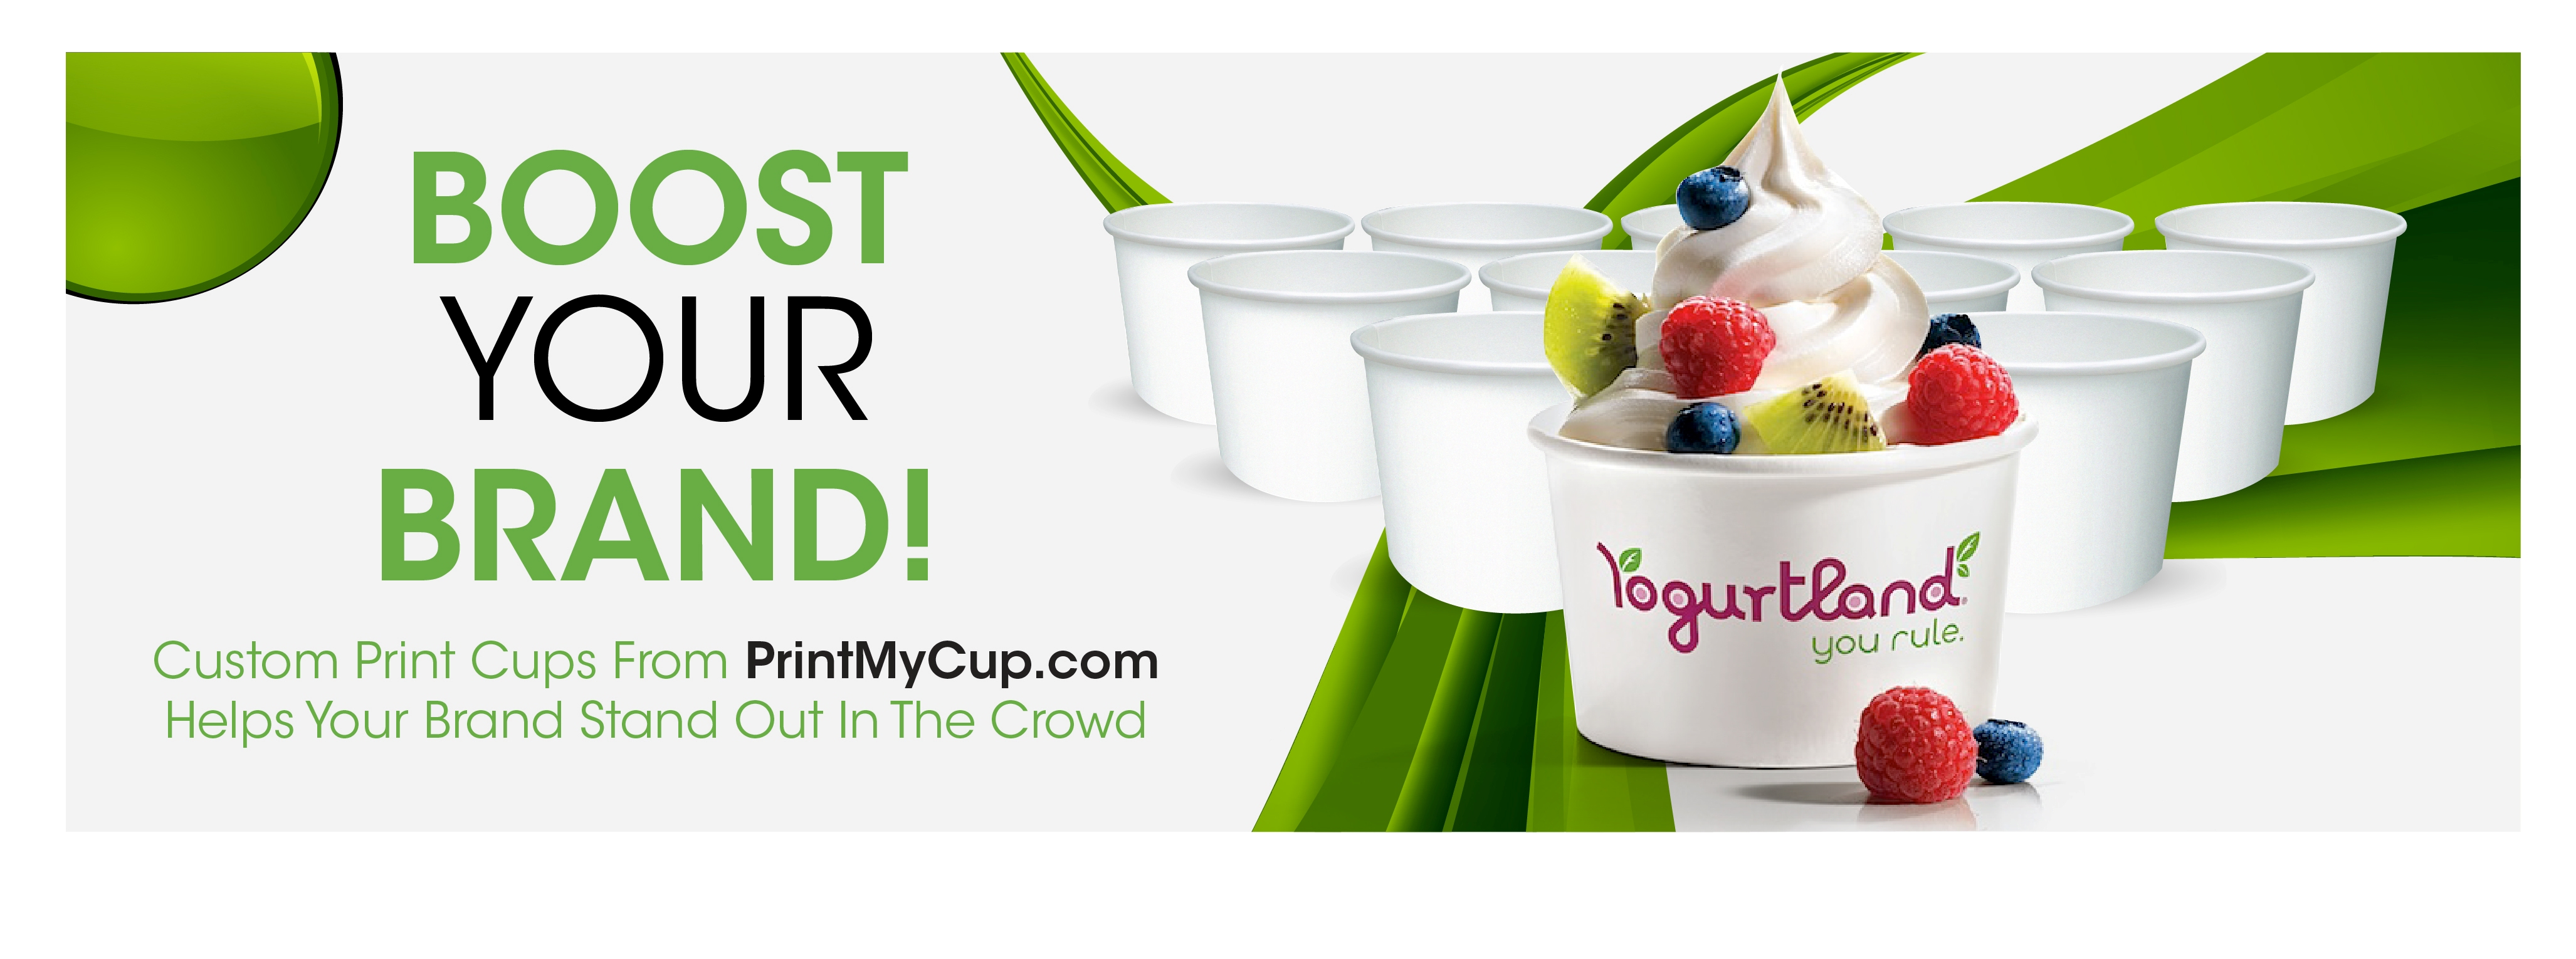 bOOST yOUR bRAND, custom printed cups printmycup.com #printmycup